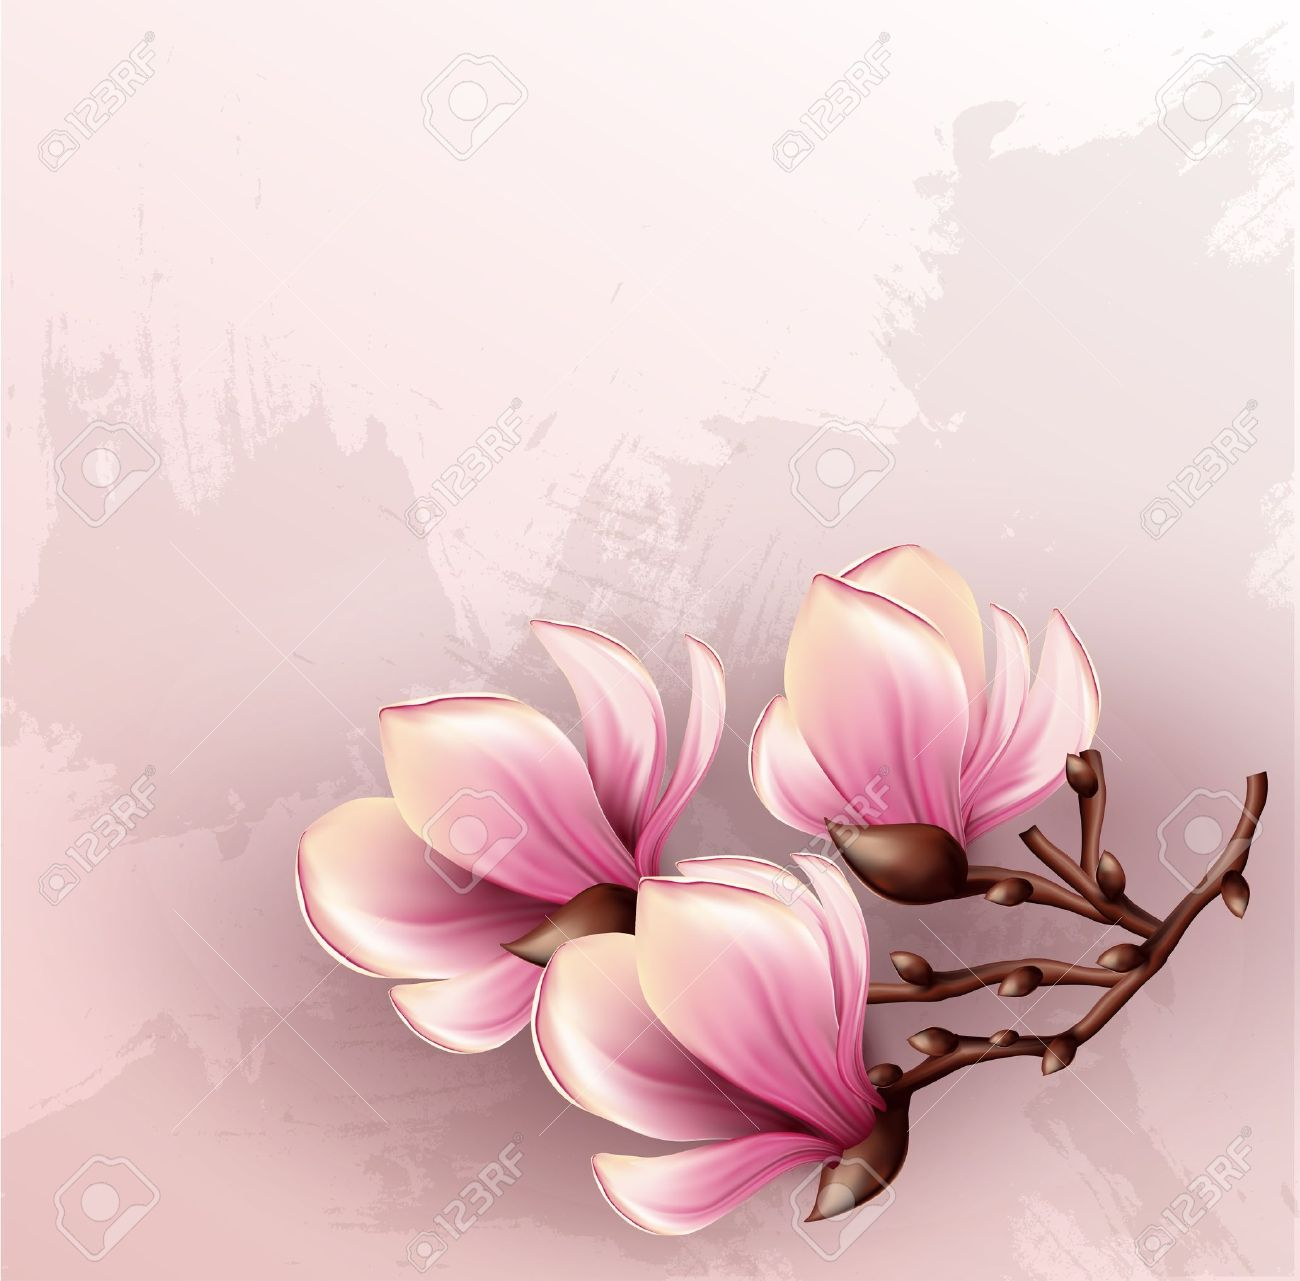 Magnolia branch isolated - 20278946